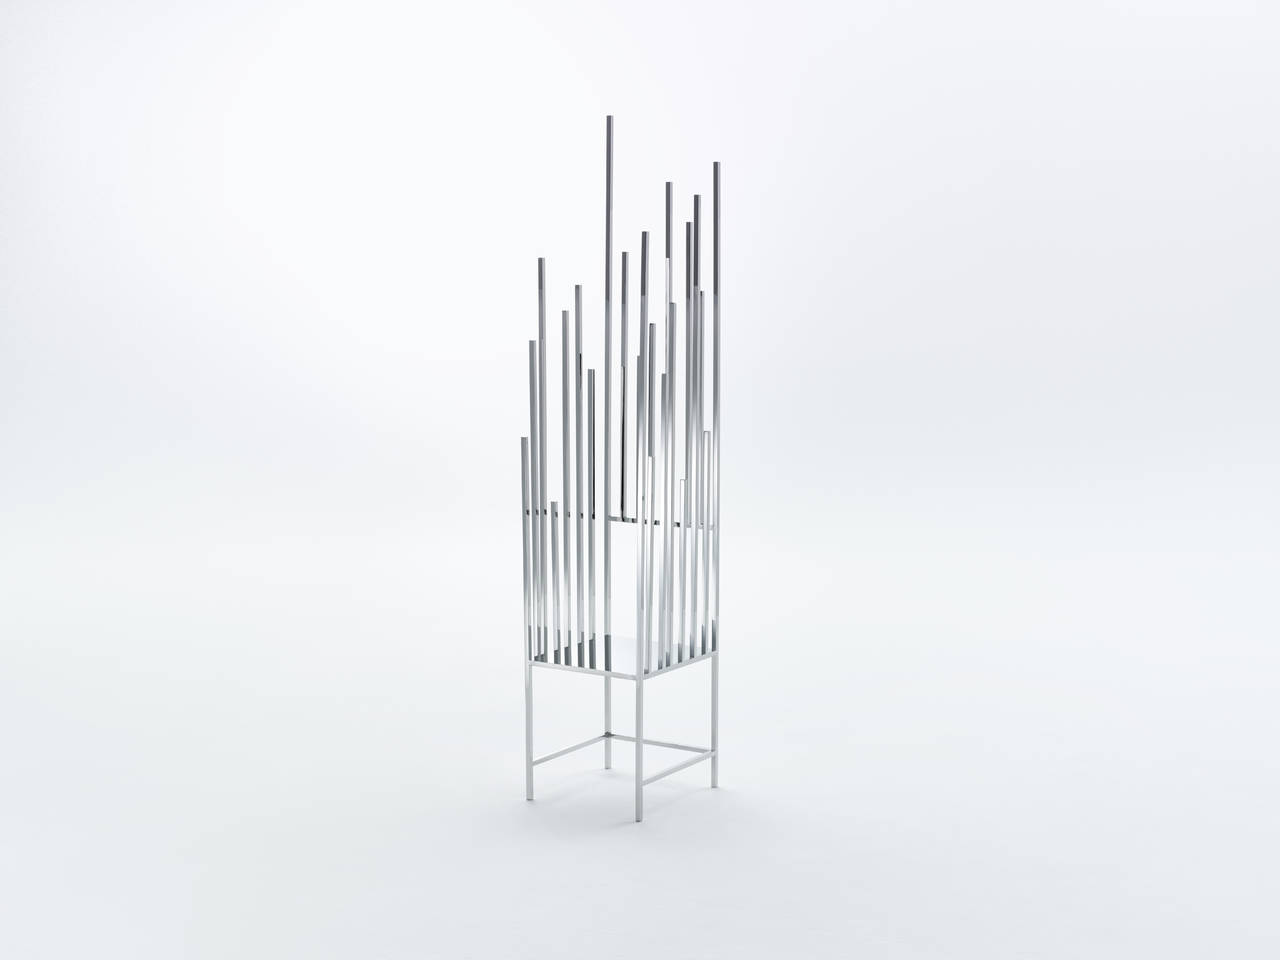 50 Manga Chairs by Nendo (Photo by Kenichi Sonehara)